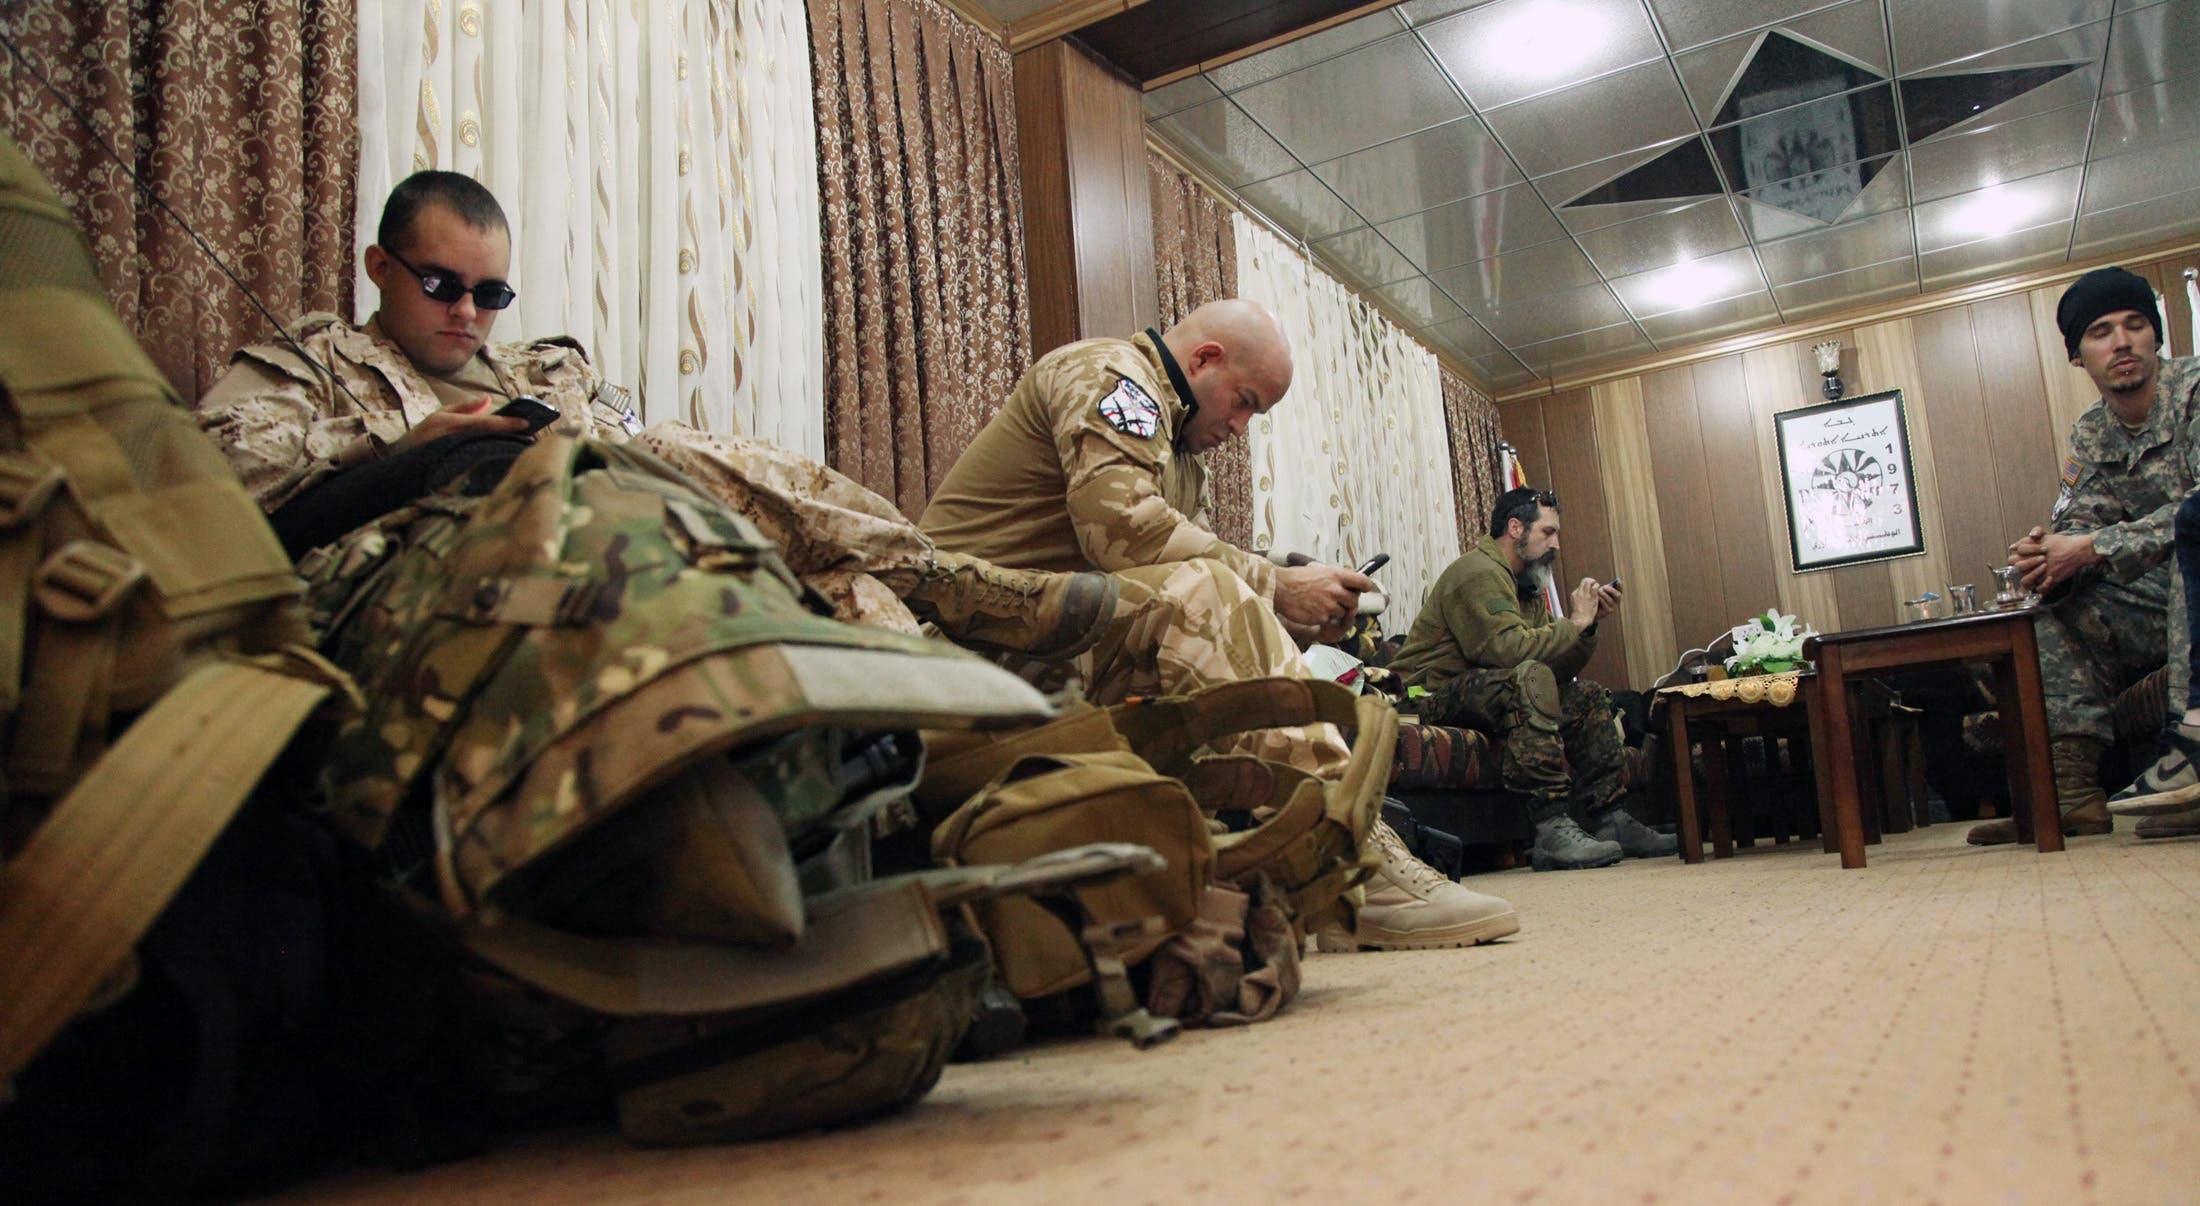 Westerners join Iraqi Christians to fight ISIS